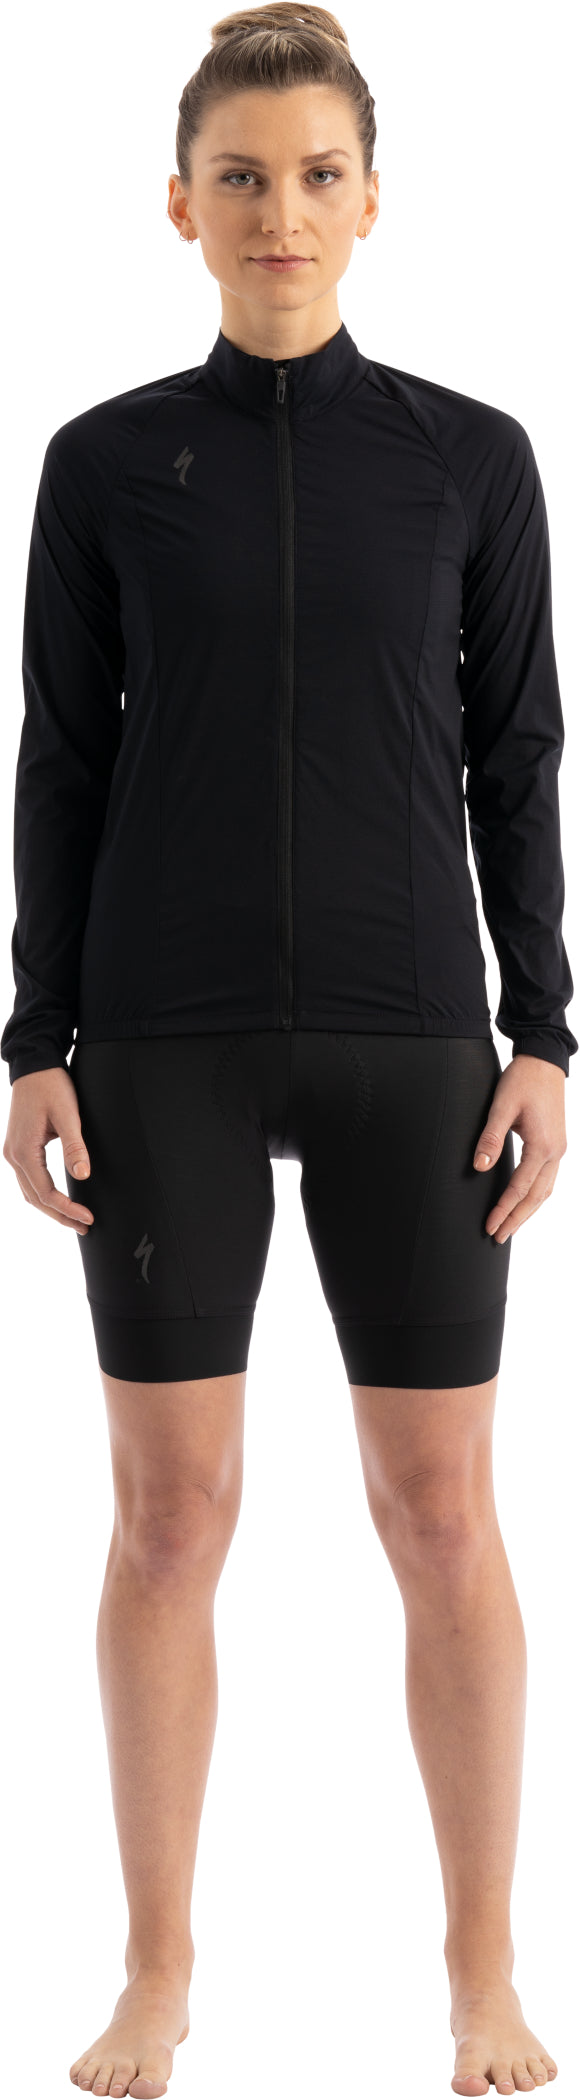 Women's Deflect Wind Jacket